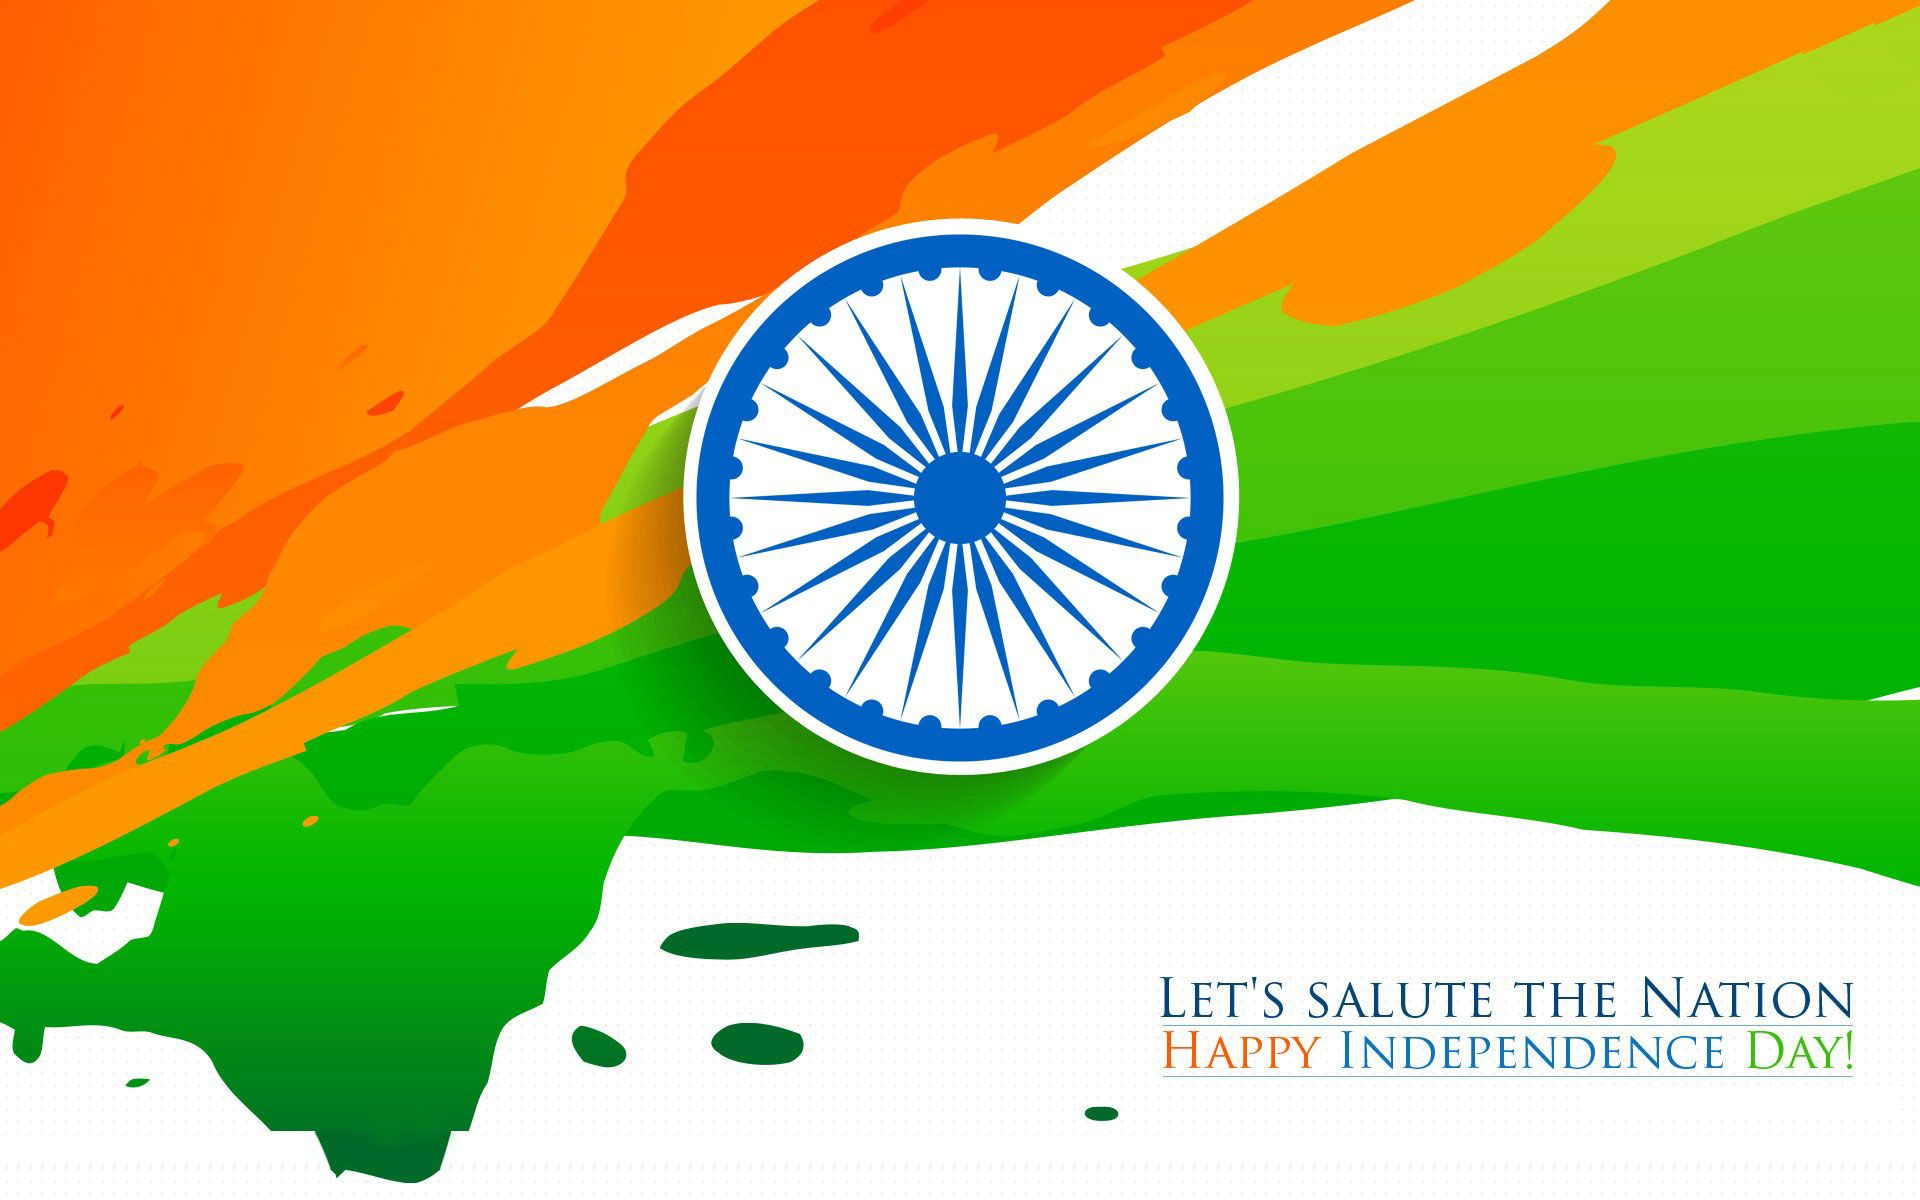 Indian Flag Images Photos Pictures And Wallpapers Free Download With Images Independence Day Images Happy Independence Day Images Independence Day Pictures